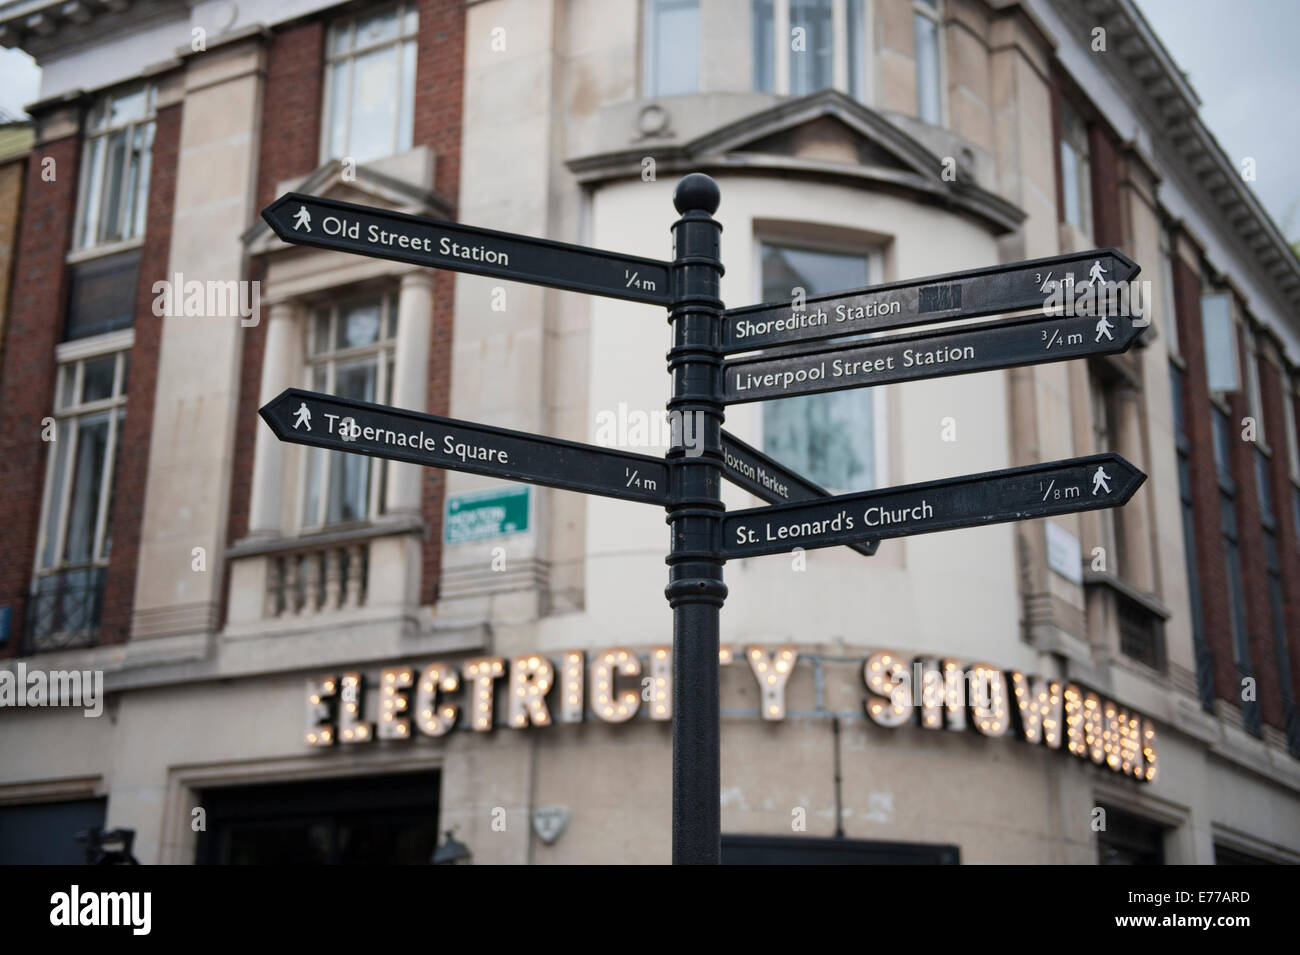 The Electriciy Showrooms in Shoreditch Hoxton East London - Stock Image